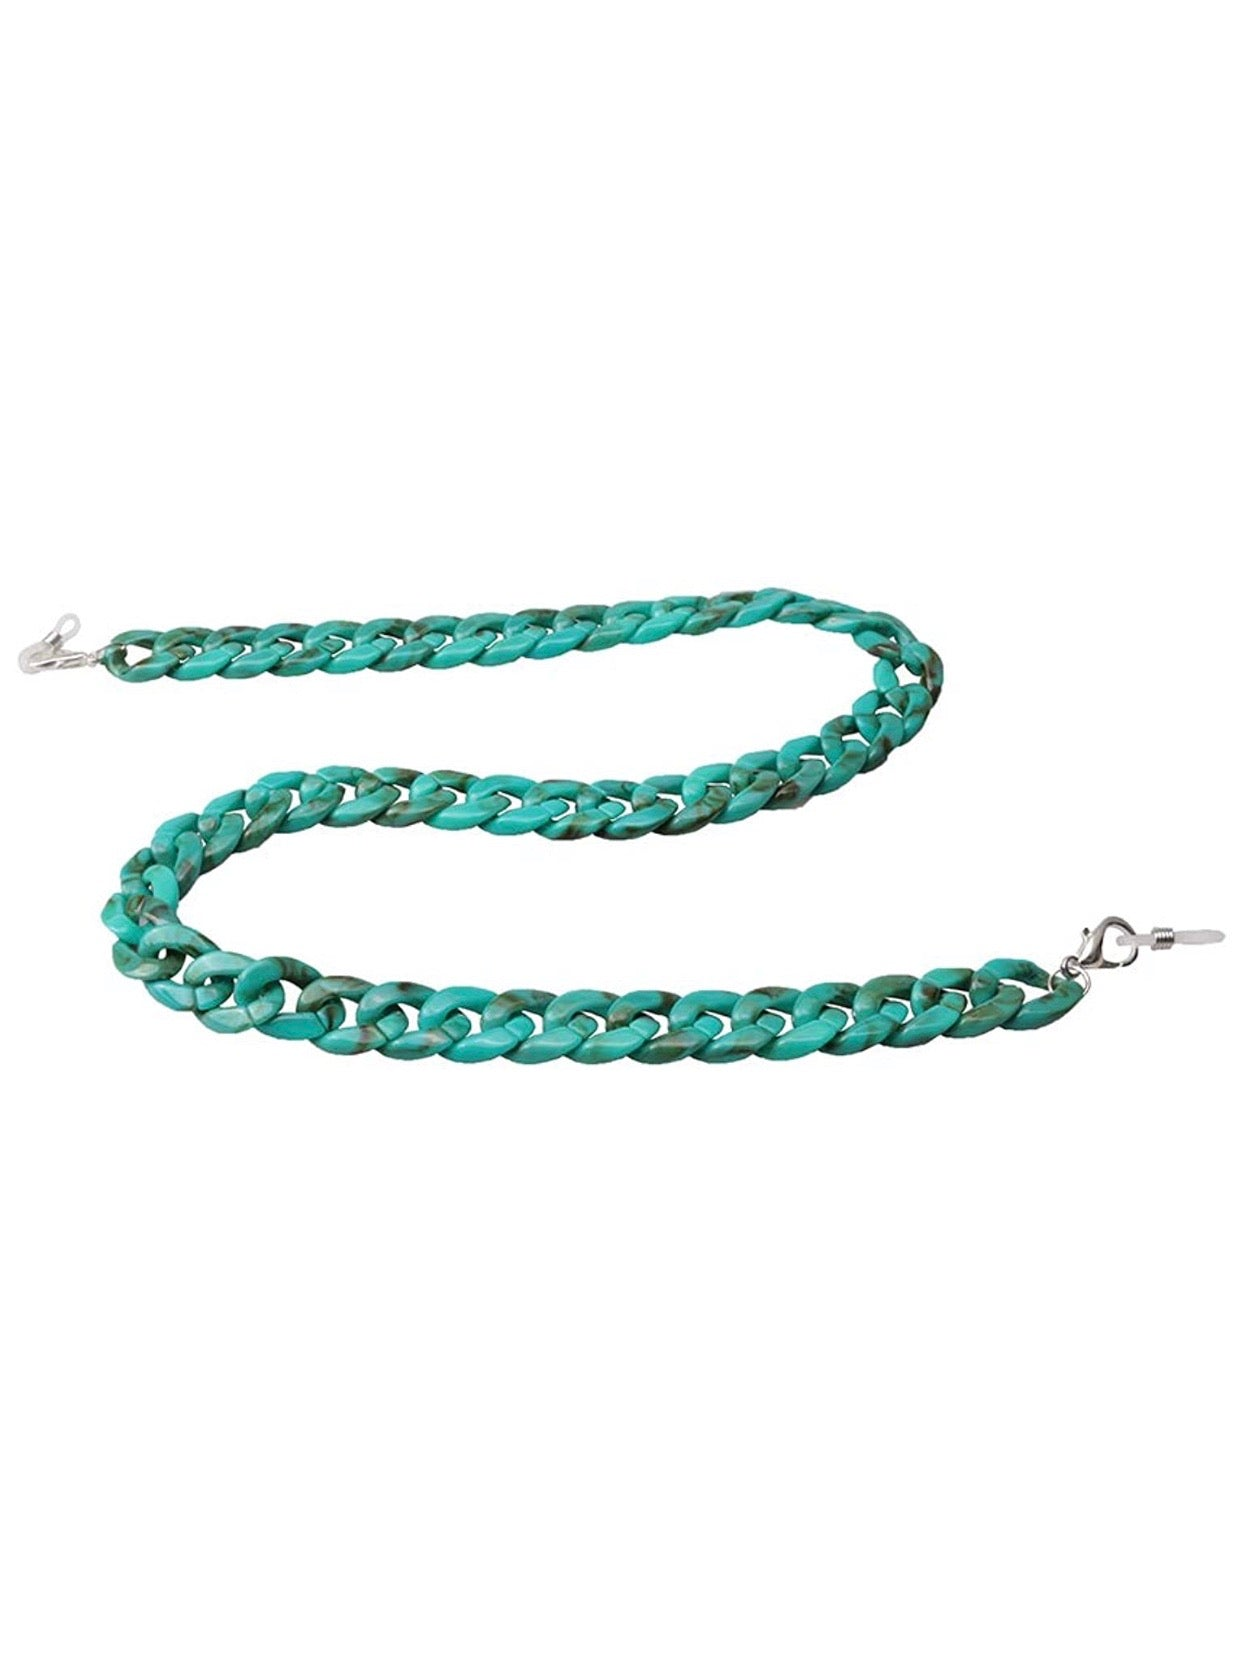 Acrylic Link Glass Chains